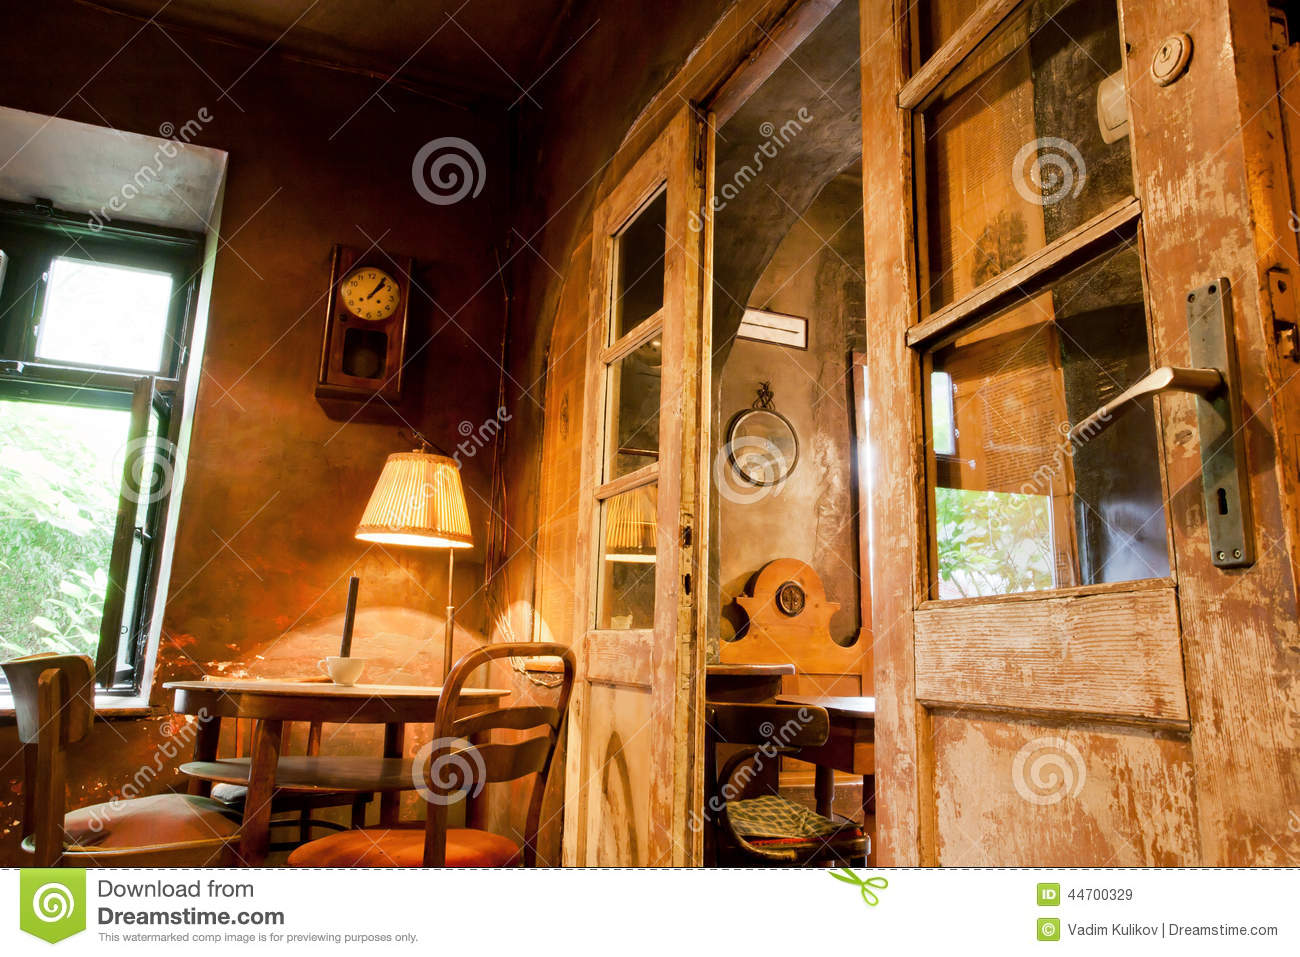 Wooden Furniture Doors And Lamps Inside The Cafe In Style Of